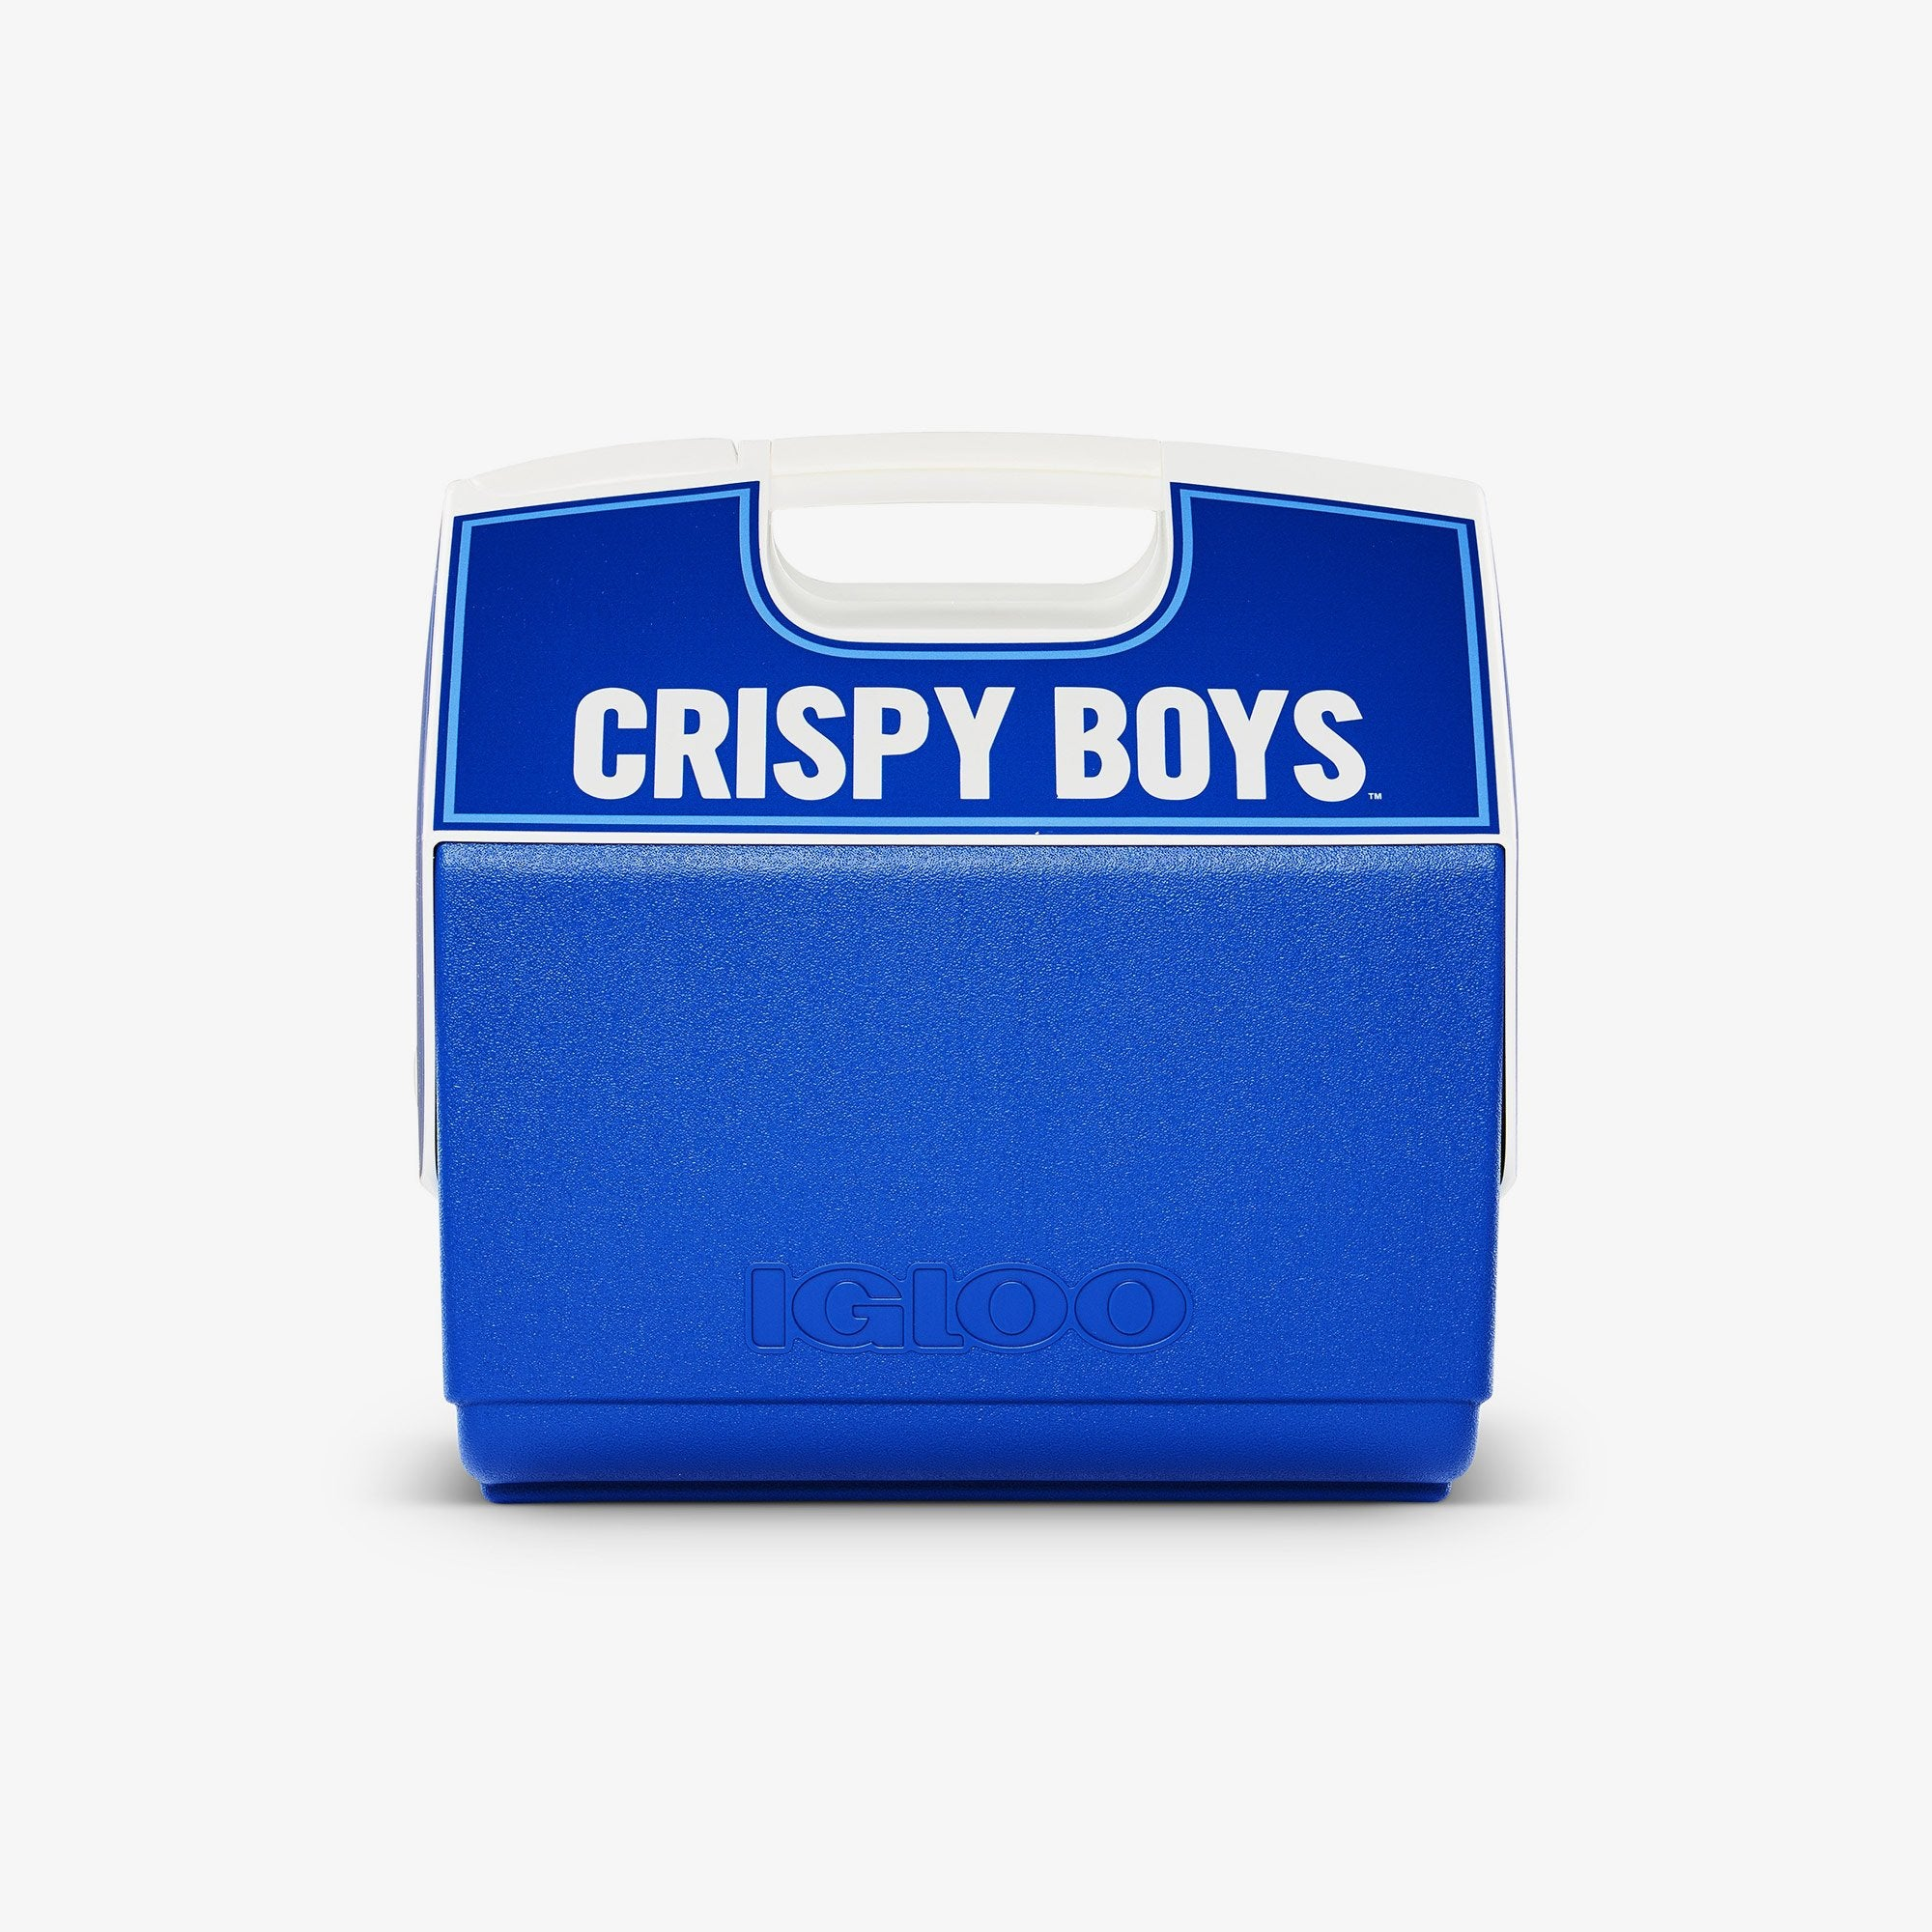 Large View | Crispy Boys Playmate Elite Limited Edition 16 Qt Cooler